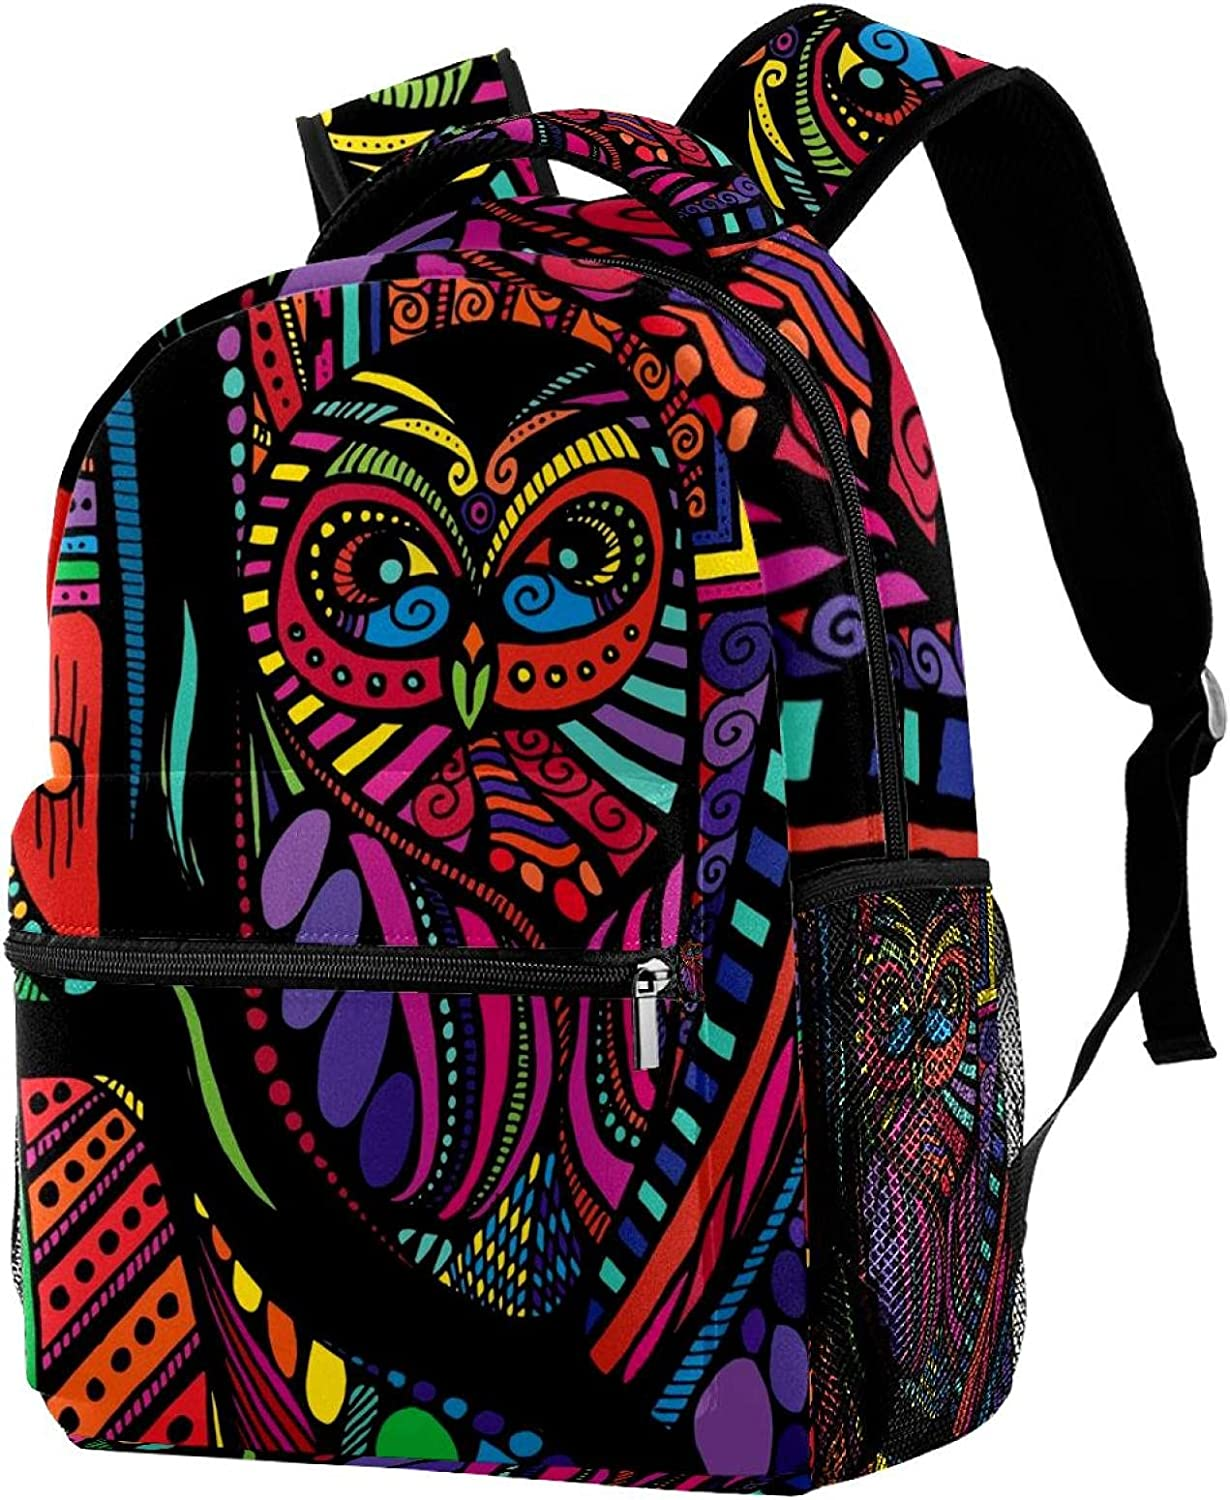 2021 spring and summer new School Backpack for Girls Boy Outdoor Travel Bag Daypack Phoenix Mall Ab Walk